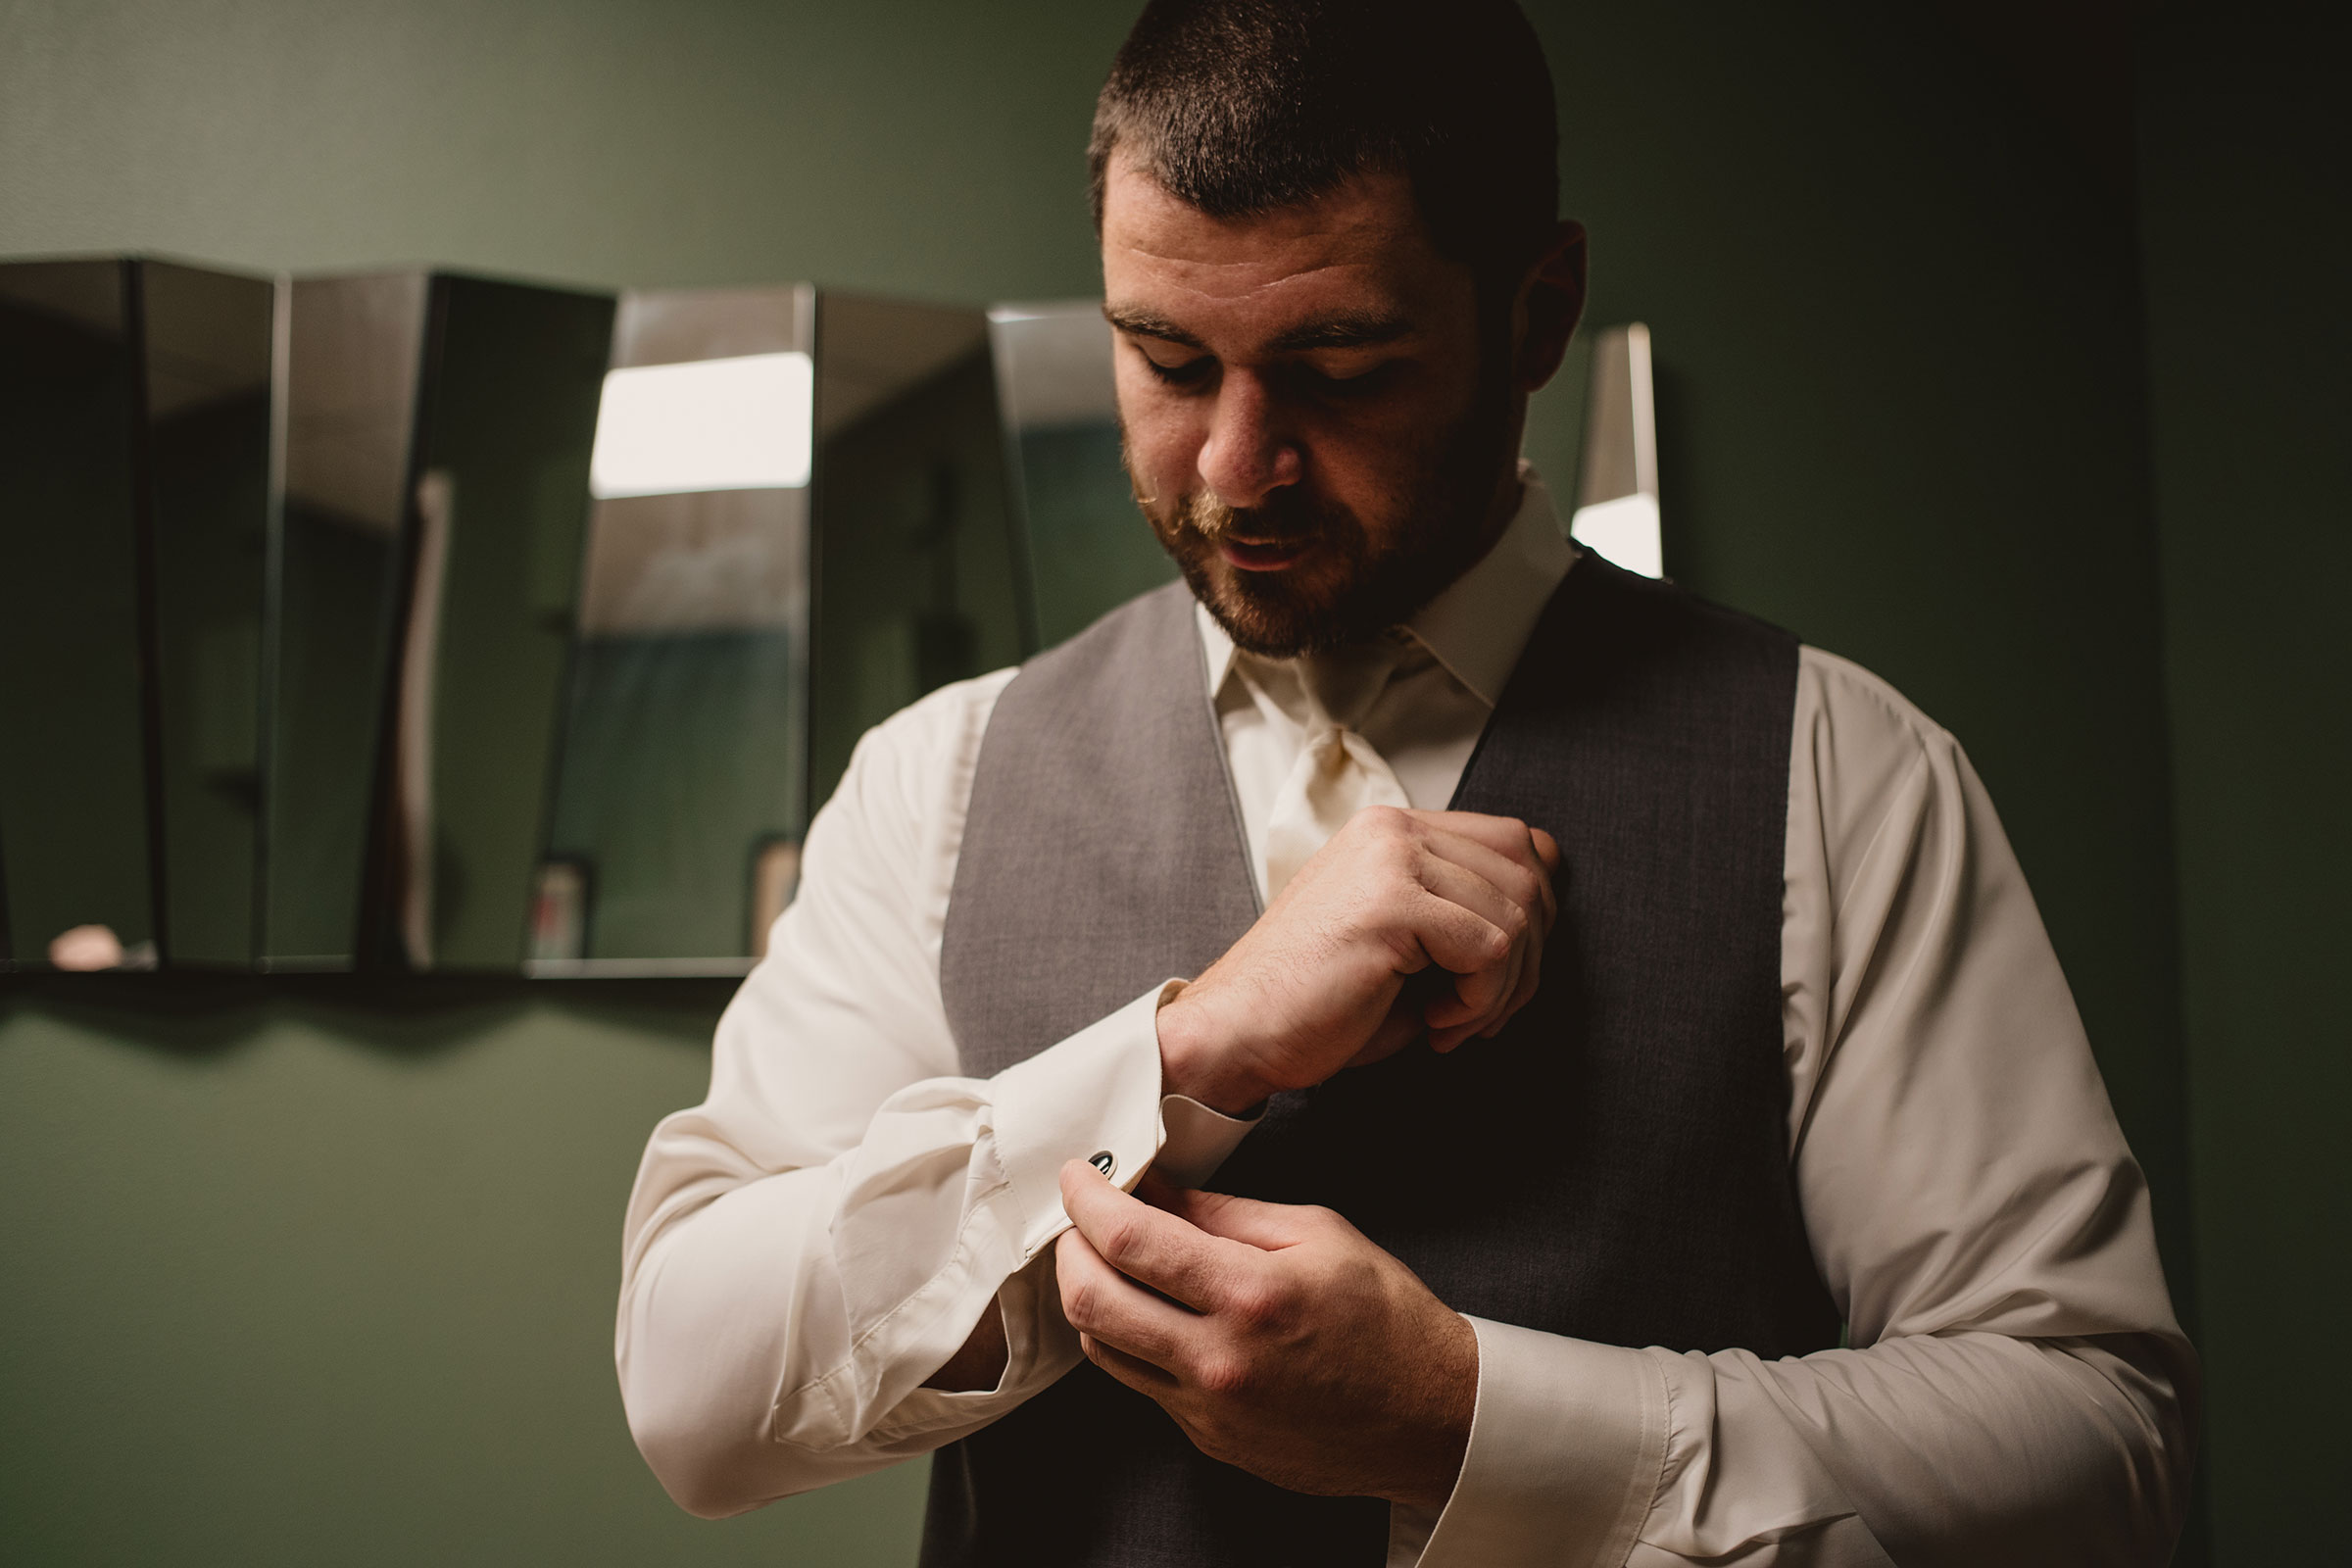 groom-getting-ready-decades-event-center-building-desmoines-iowa-raelyn-ramey-photography..jpg